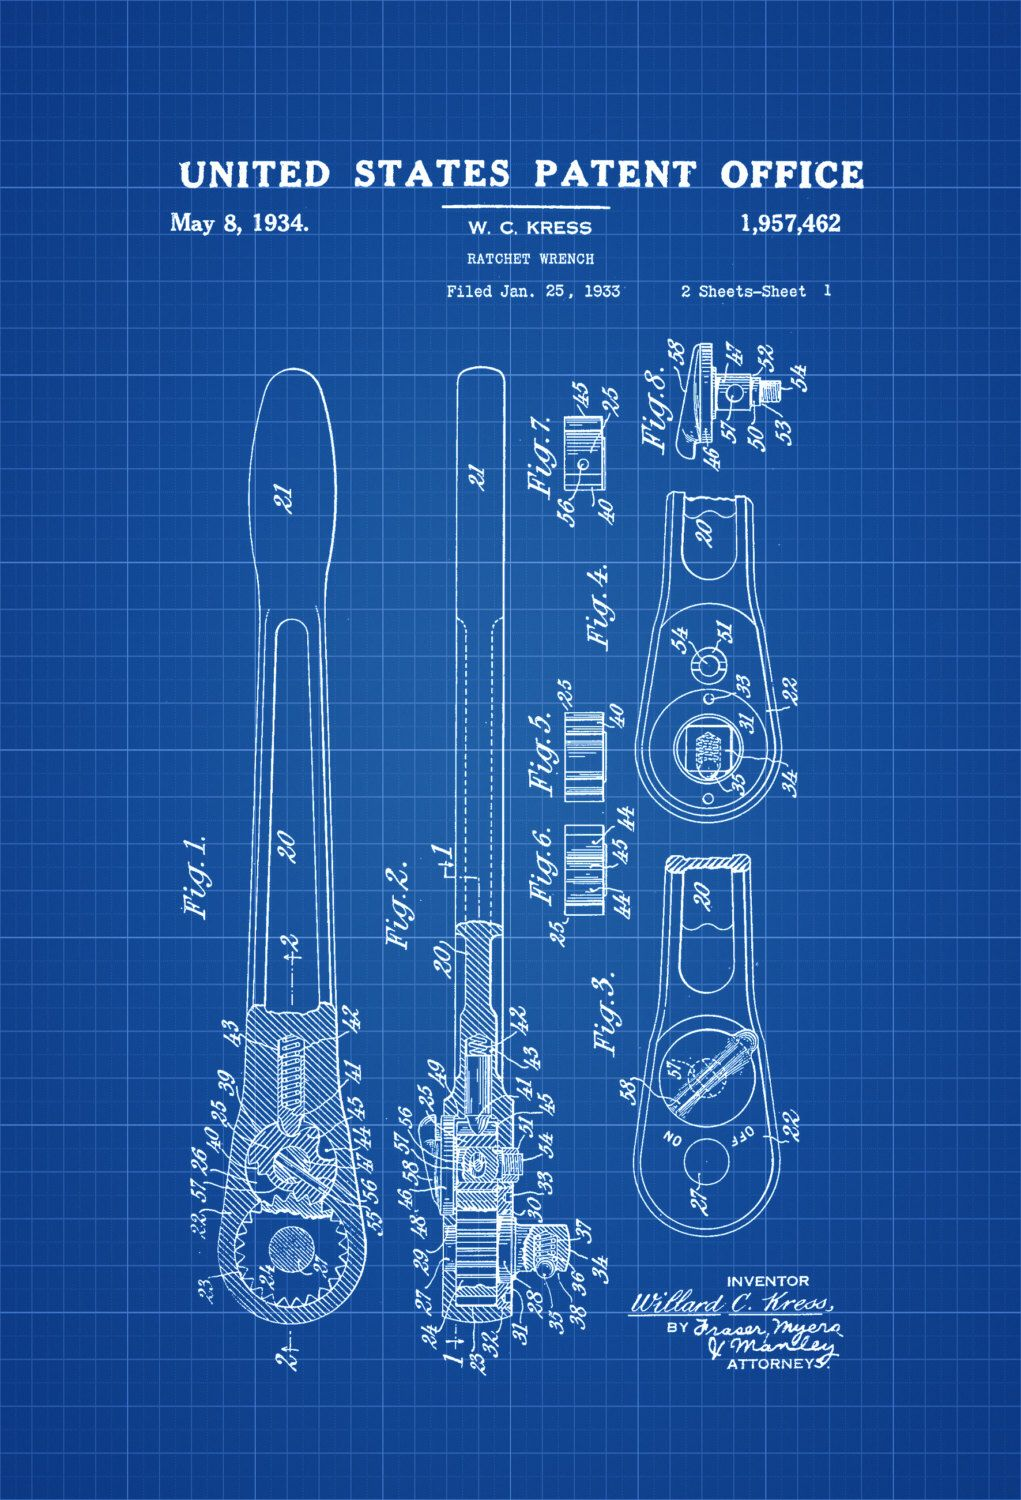 Ratchet Wrench Patent Patent Print Wall Decor Office Etsy Garage Decor Patent Prints Patent Art